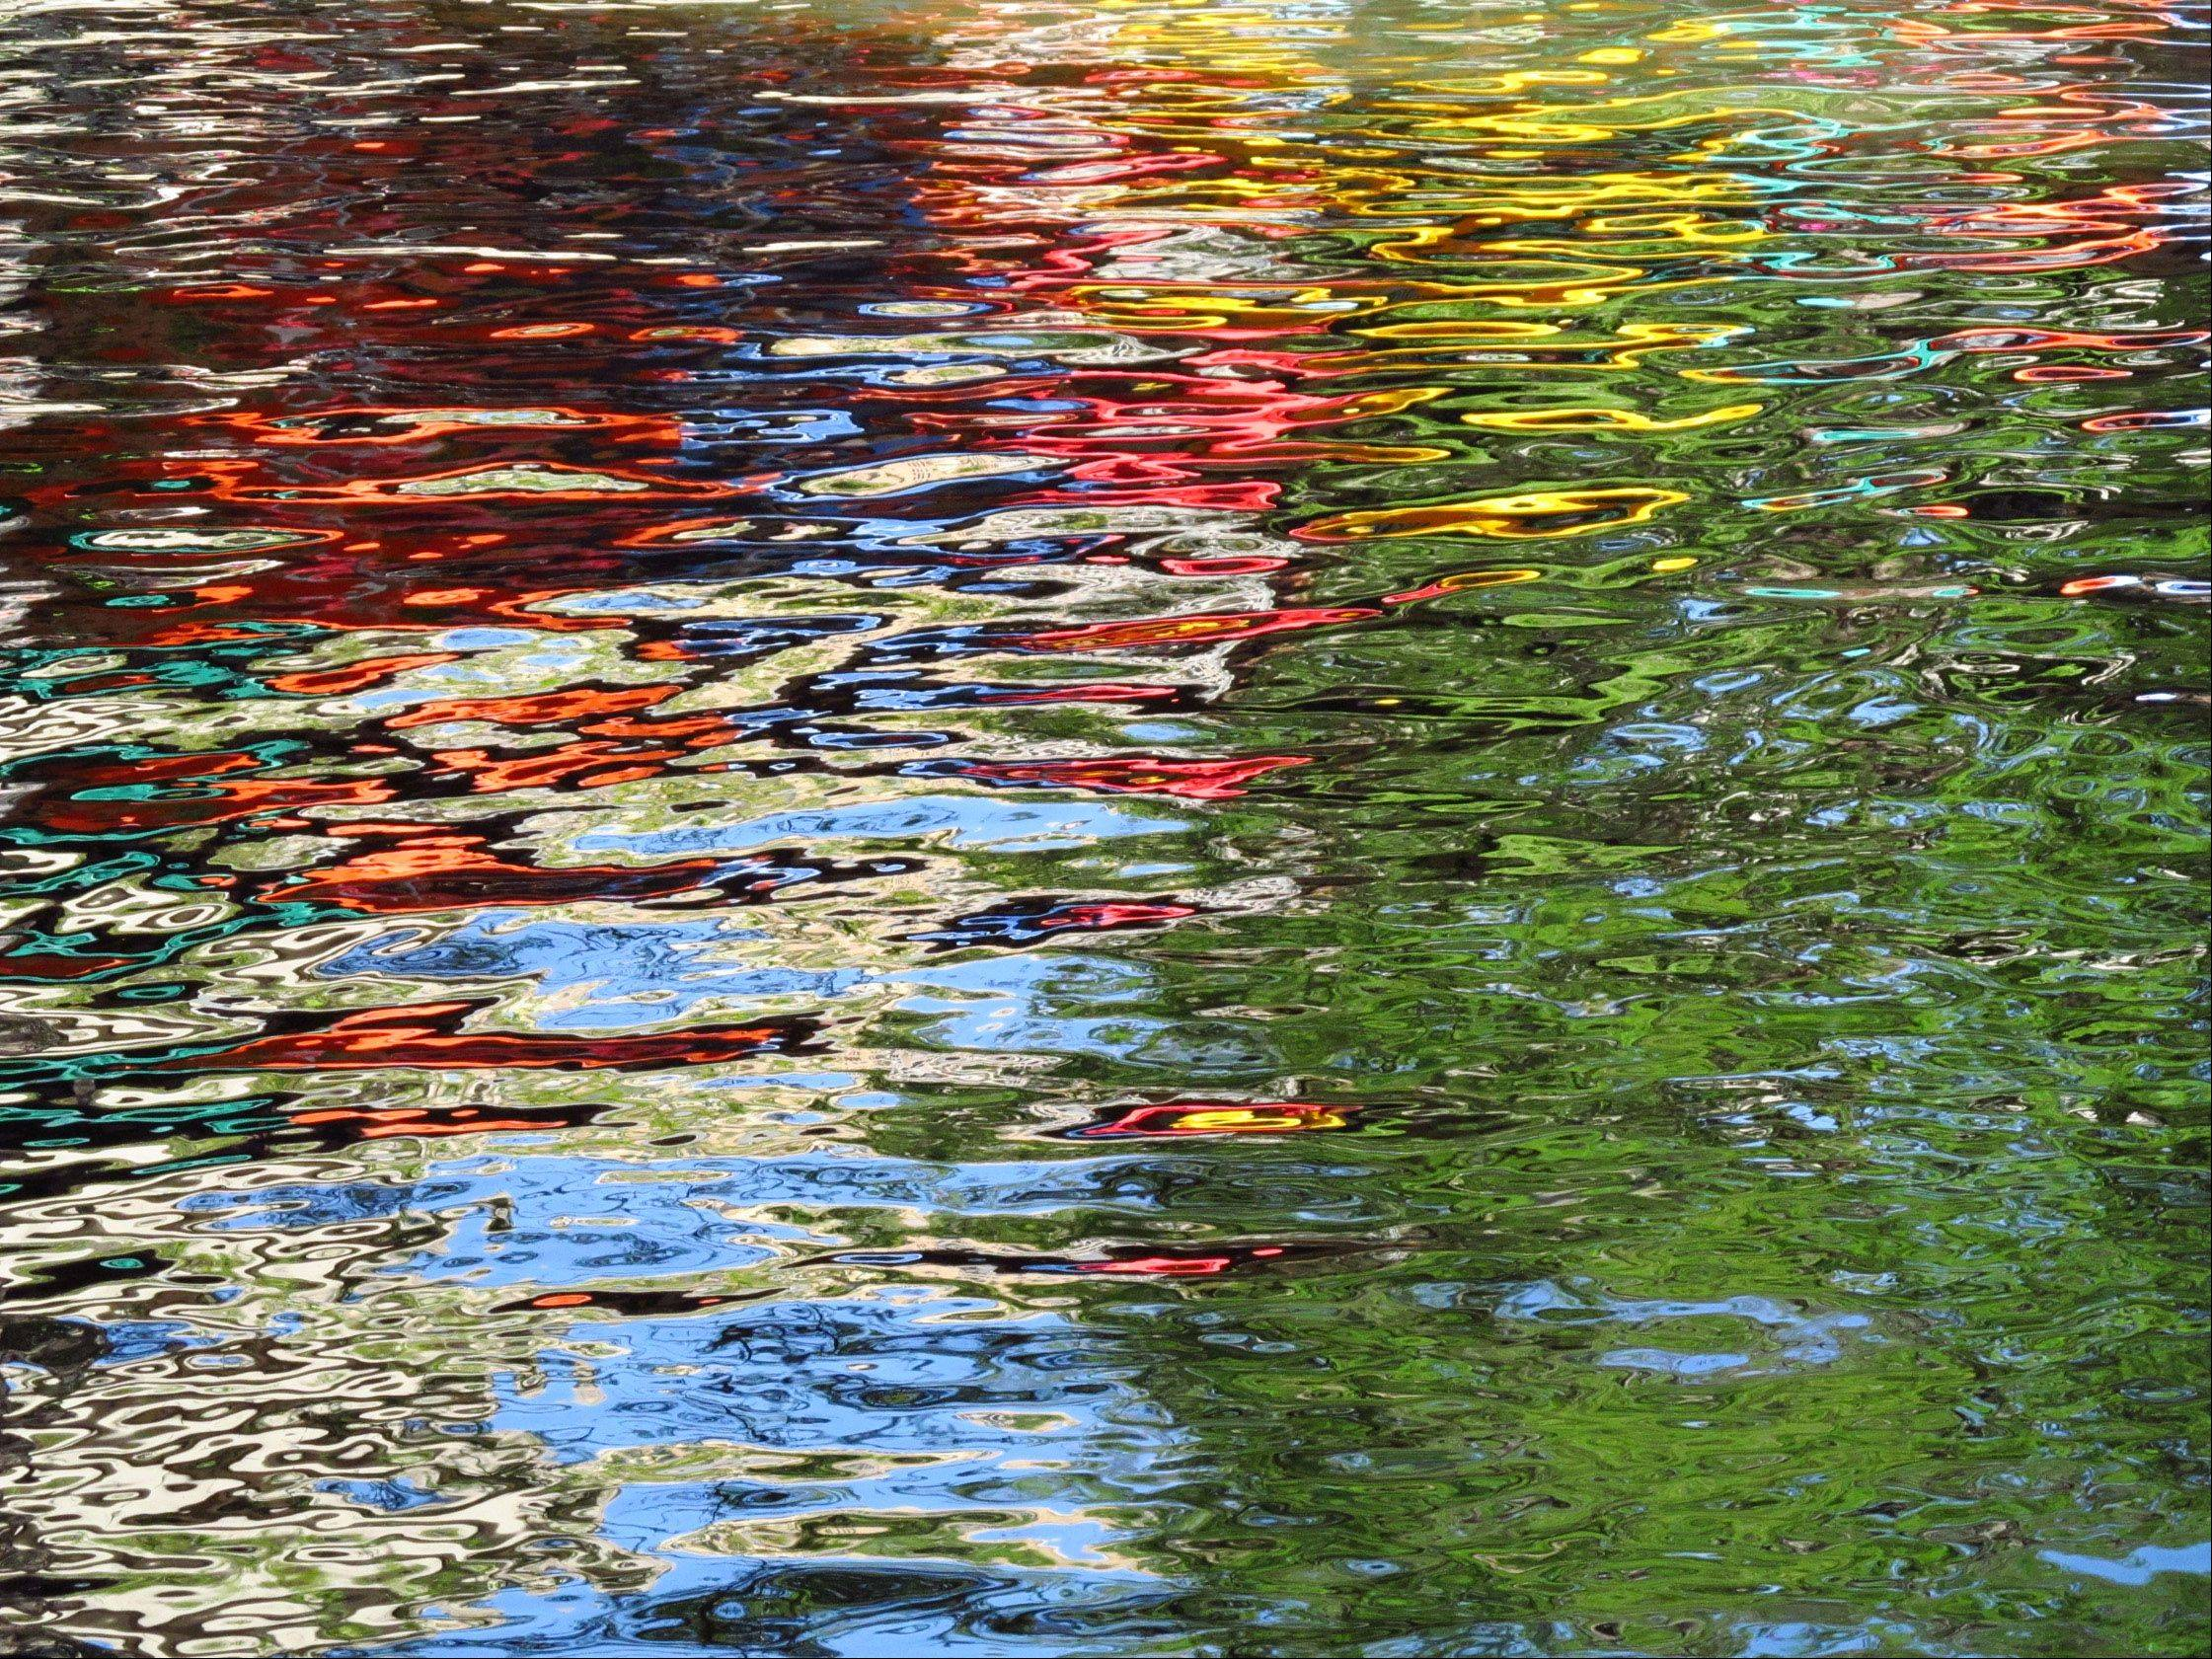 The colorful umbrellas of an outdoor cafe reflected in the water of the San Antonio River Walk in April 2013.